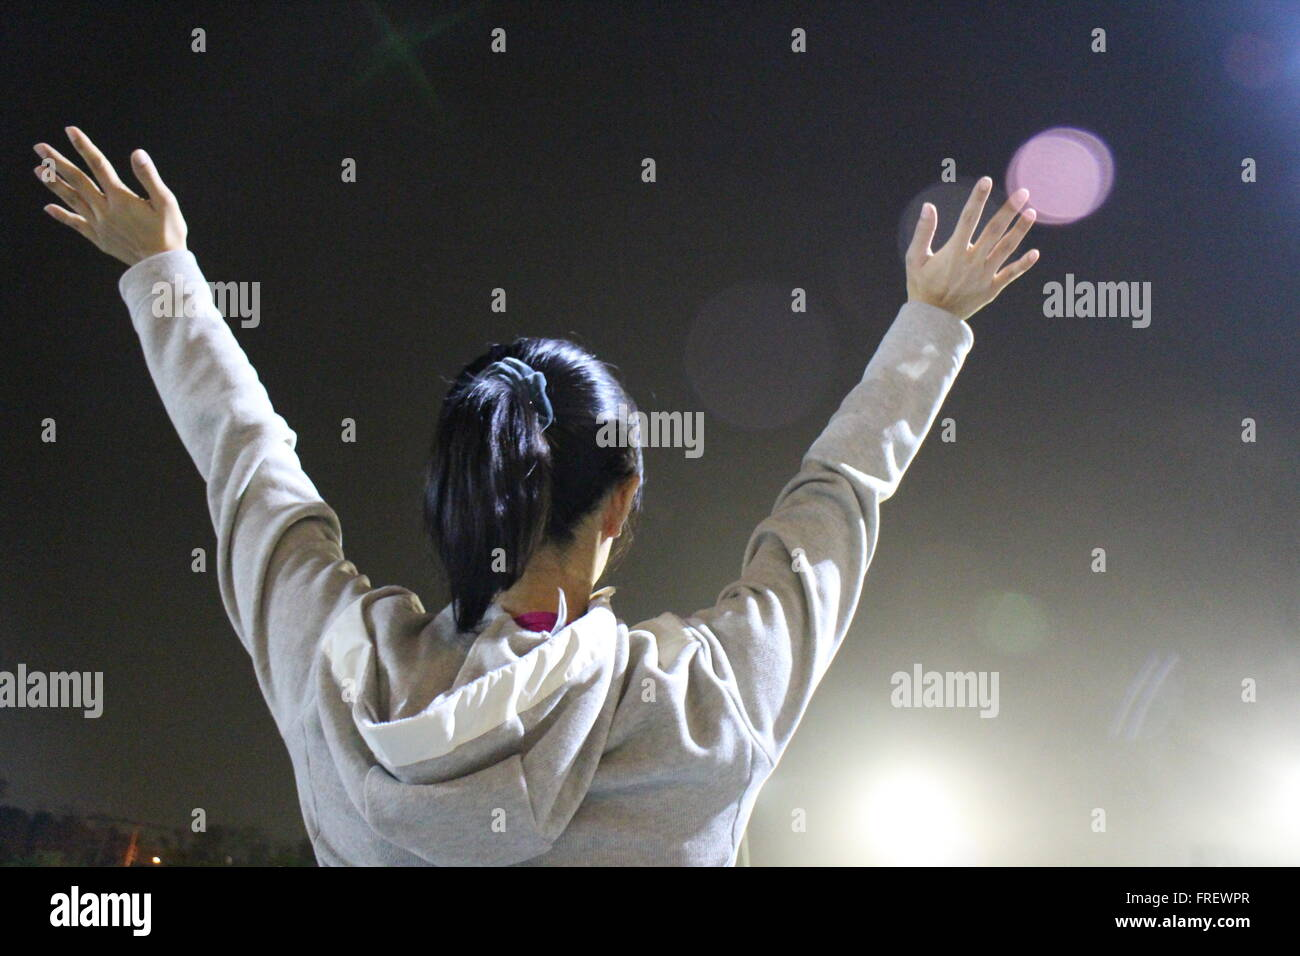 Woman standing with hands up /Avenir / liberté / espoir / concept de réussite Photo Stock